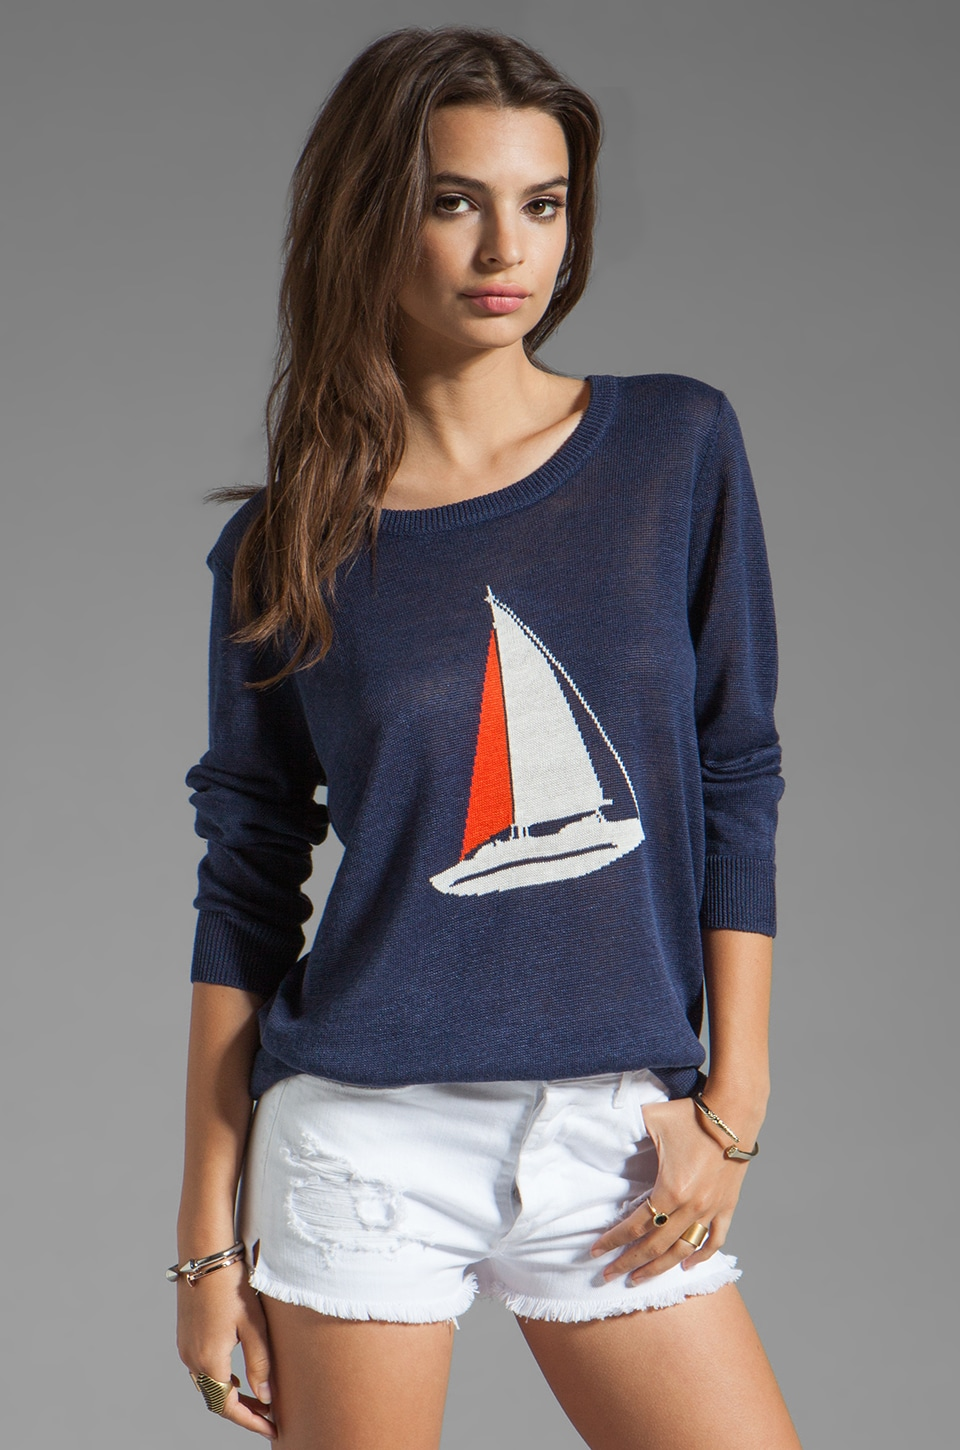 Joie Evaline Nautical Intarsia Sweater in Blue Violet